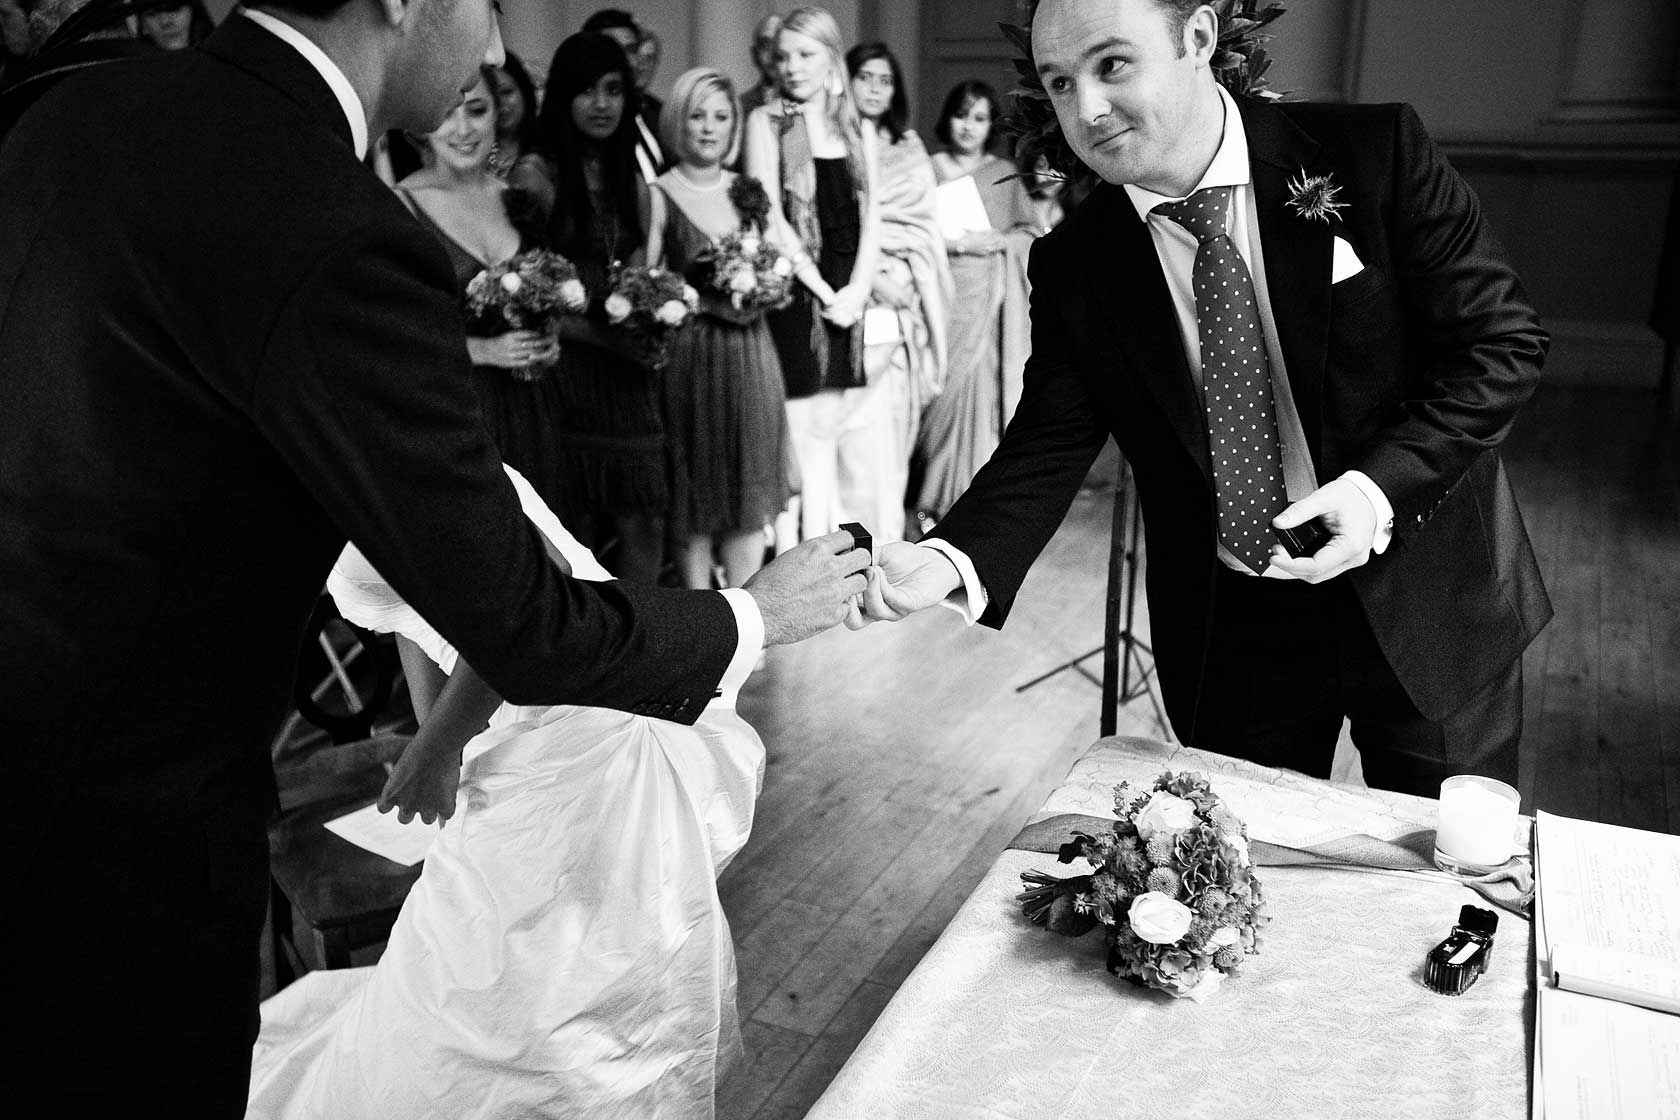 Reportage Wedding Photography in East London